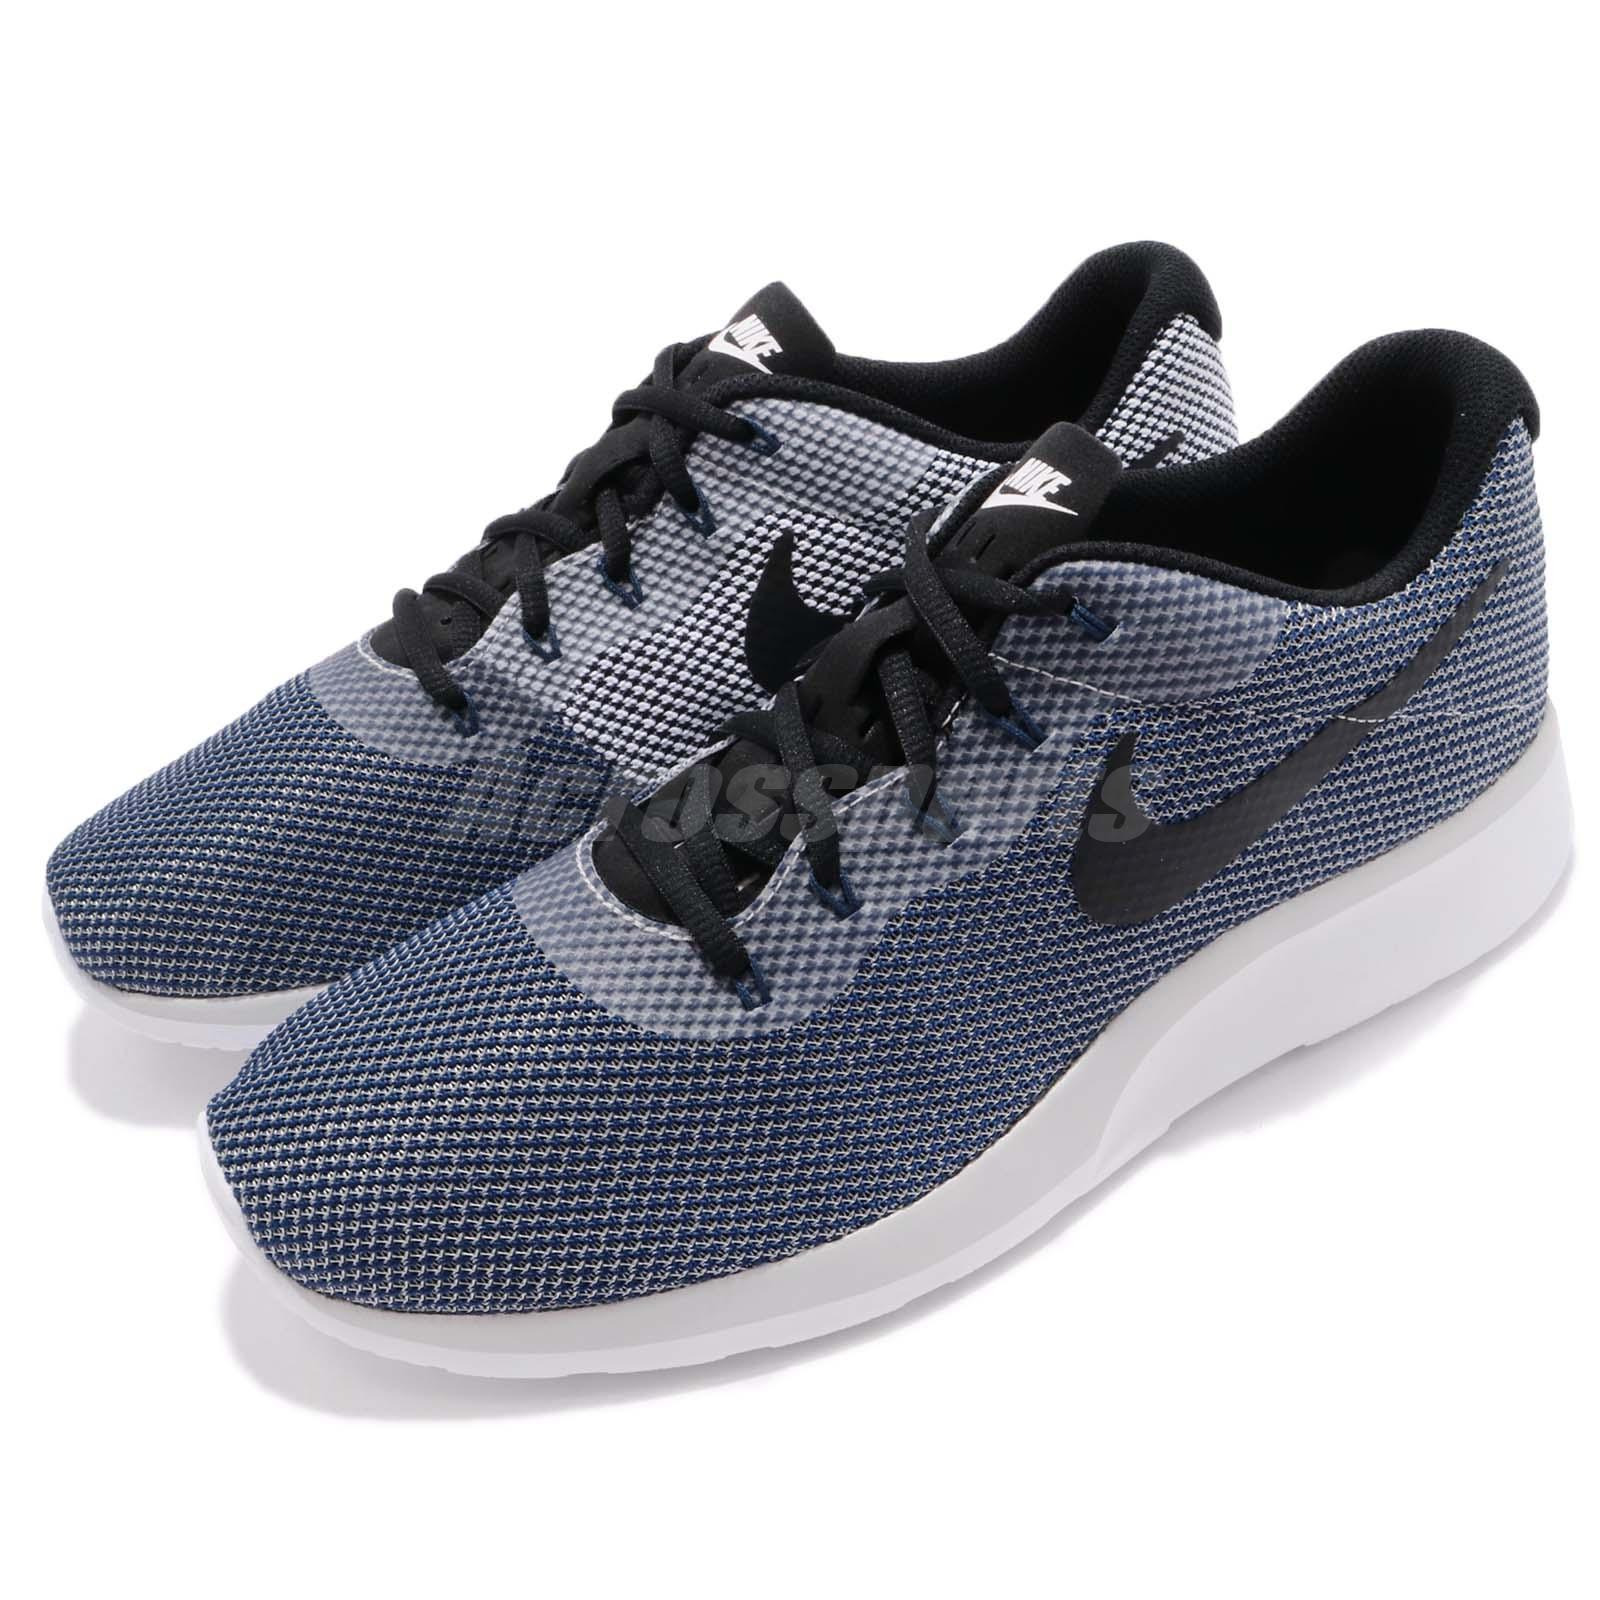 info for 81d91 9608e Details about Nike Tanjun Racer Vast Grey Navy Men Running Shoes Sneakers  Trainers 921669-005